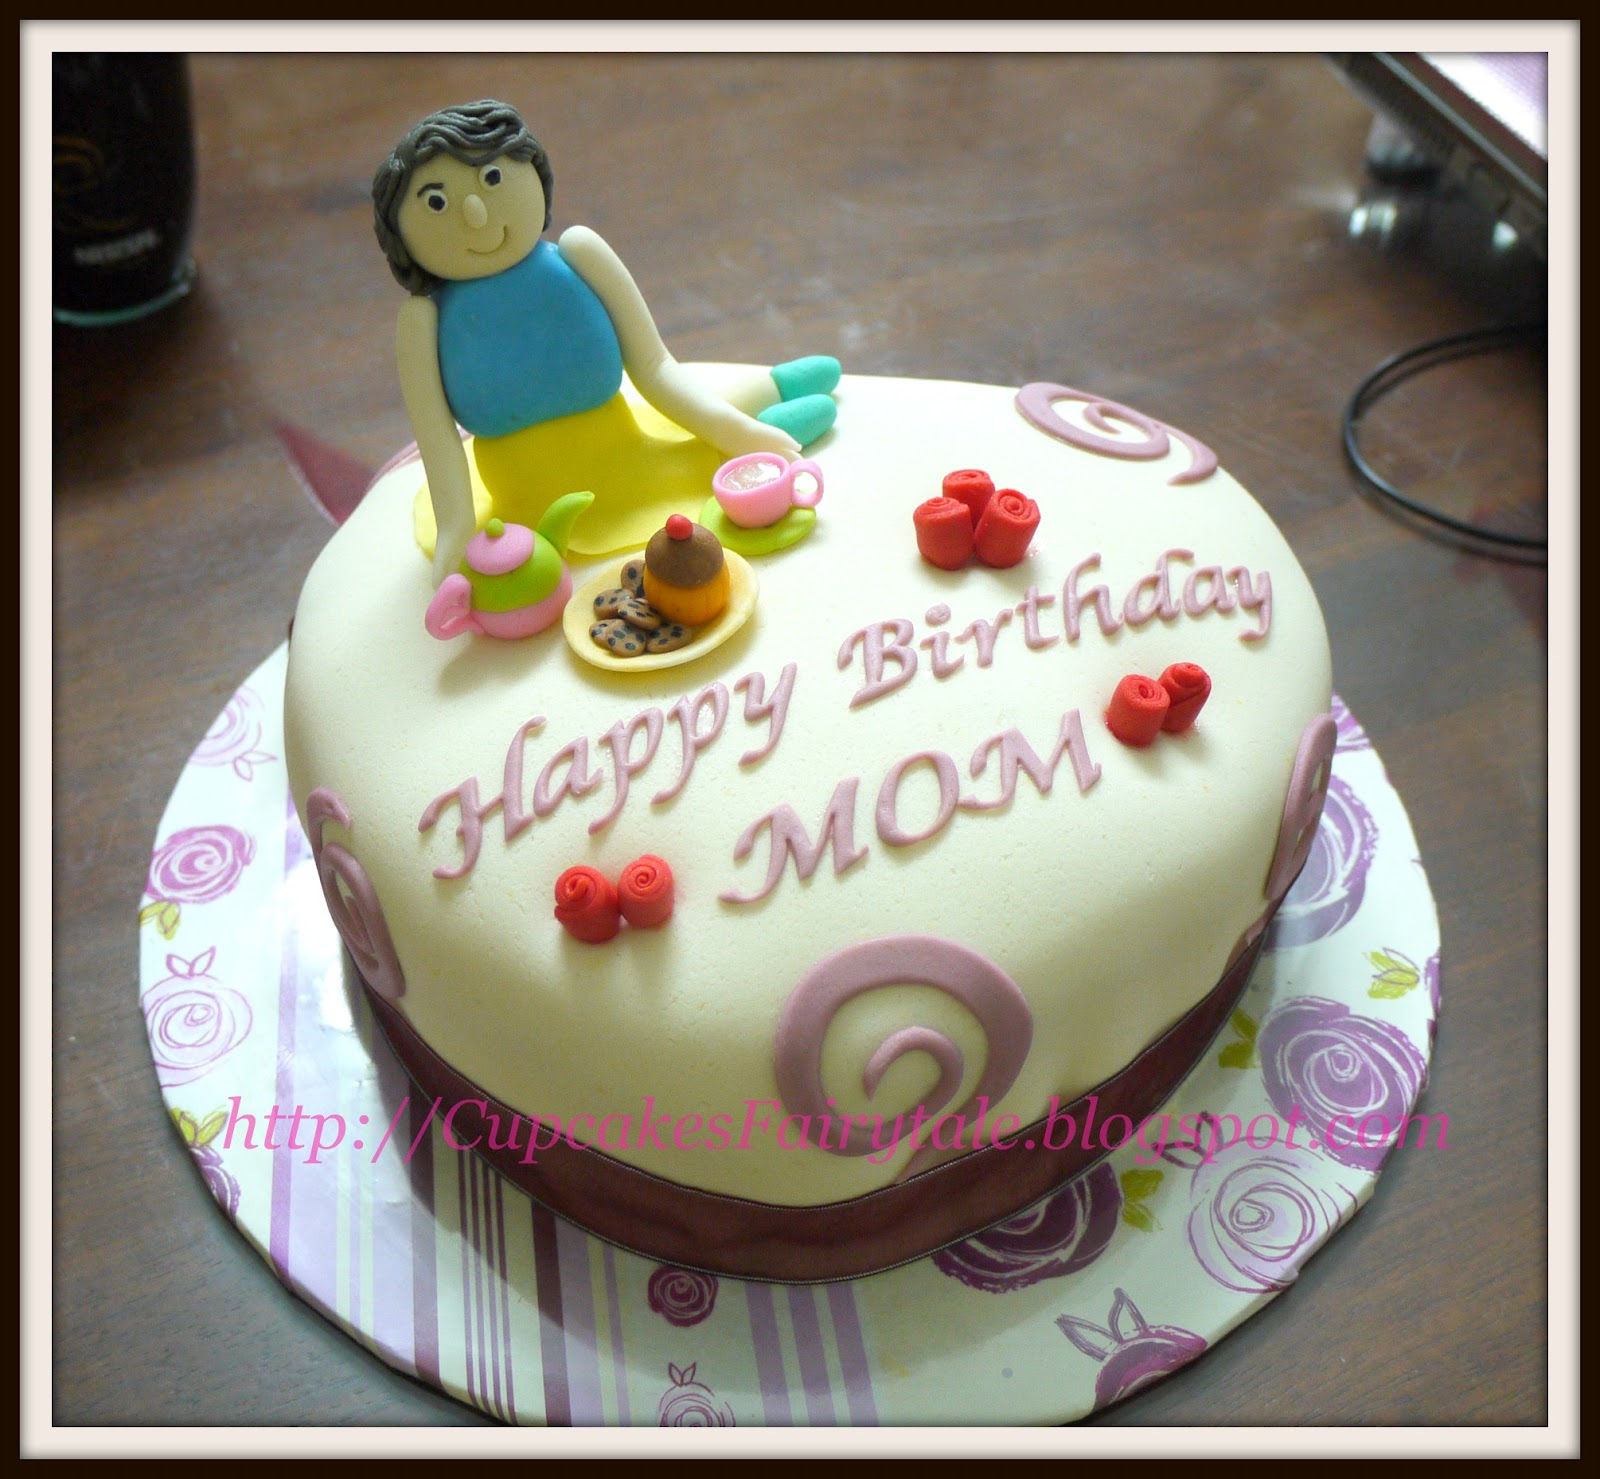 Birthday Cake For A Mom Image Inspiration of Cake and Birthday